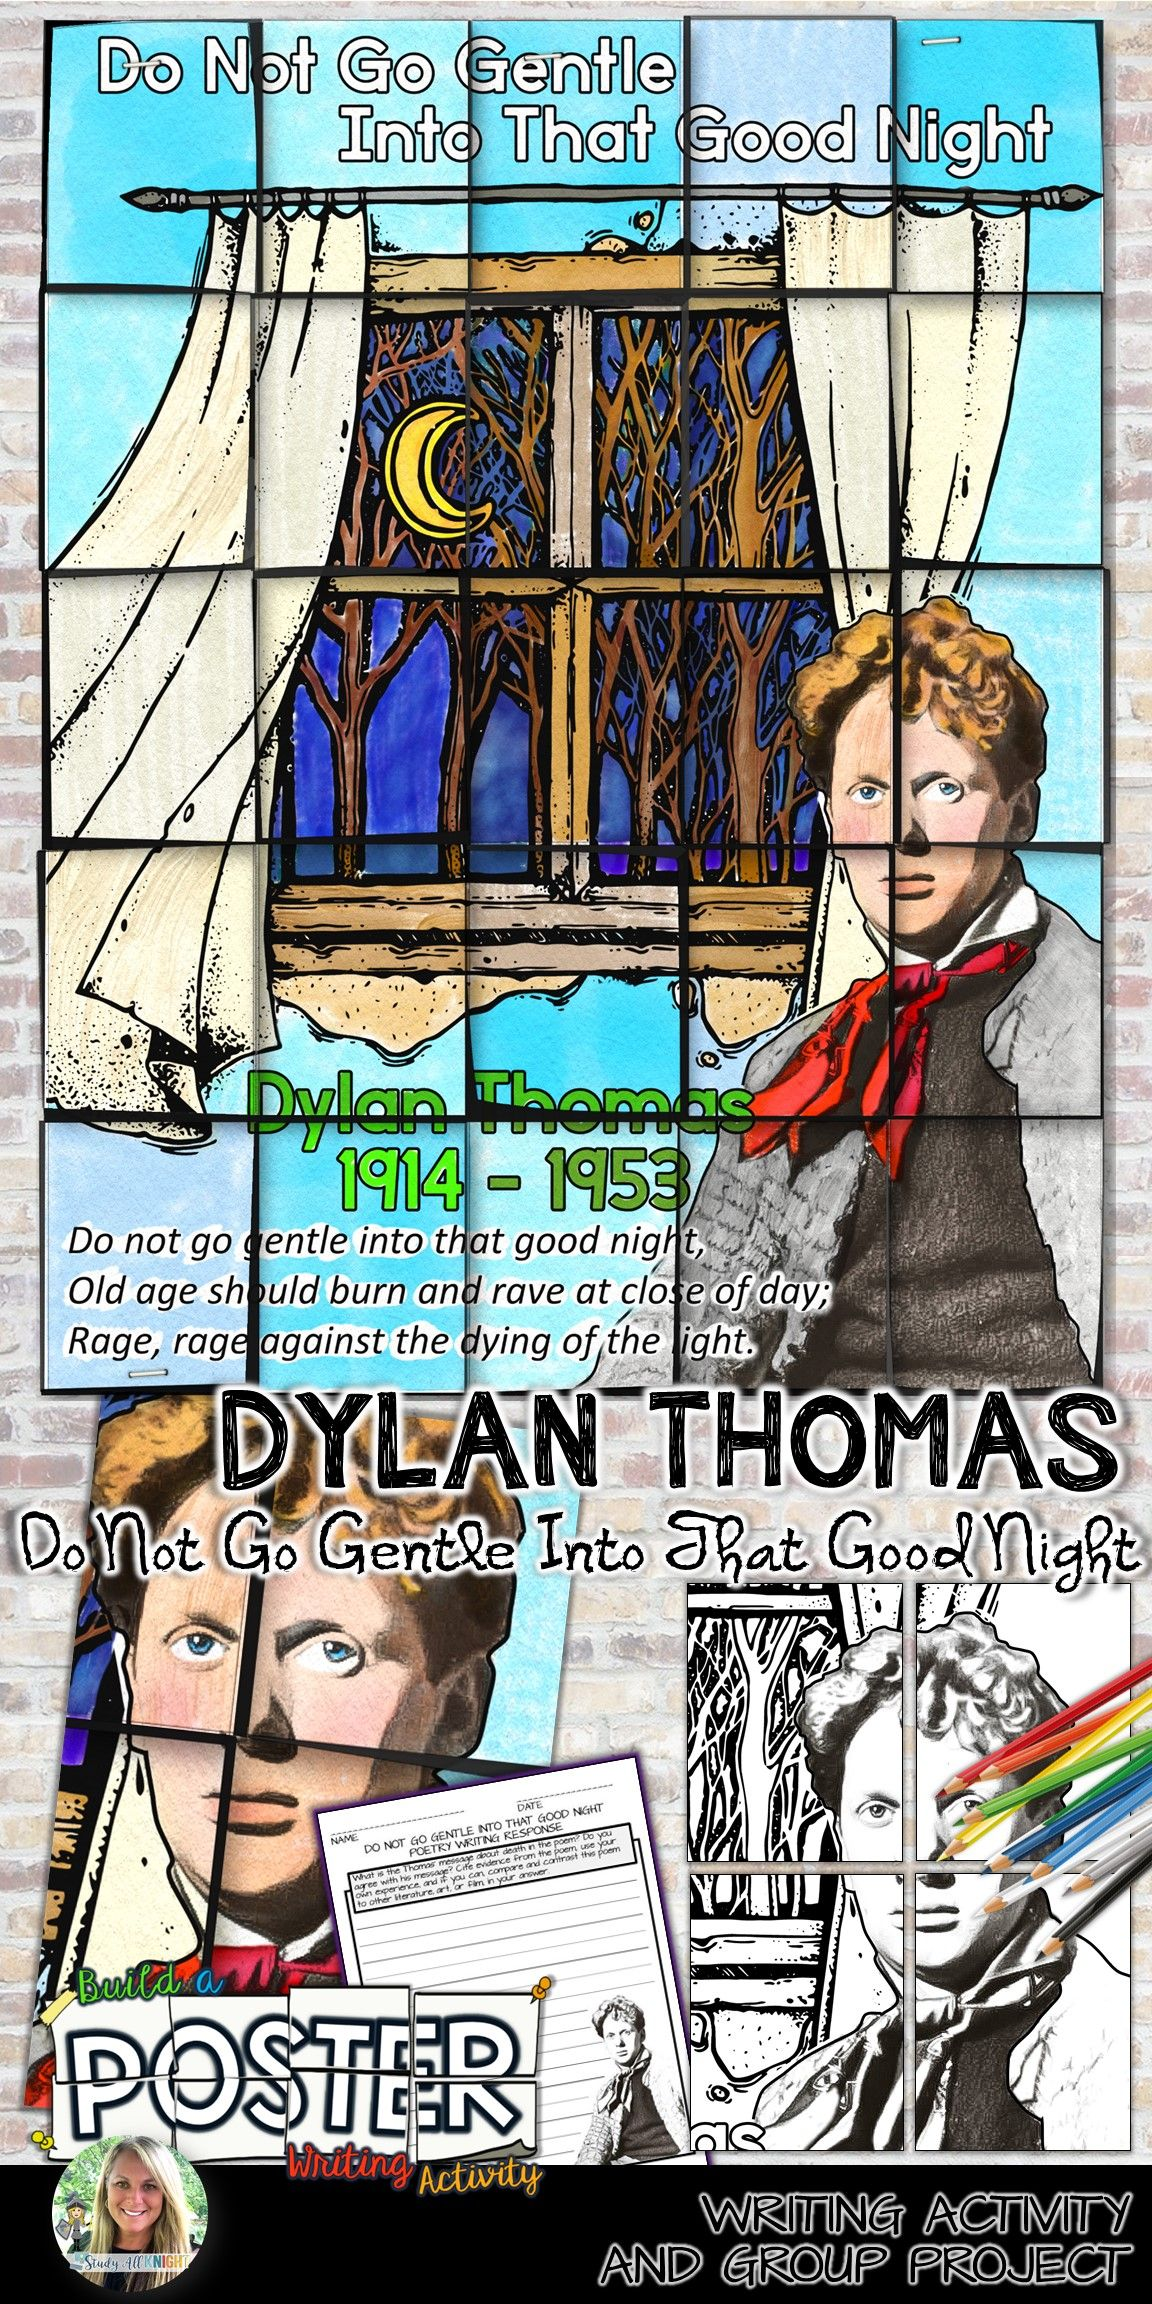 Dylan Thoma Poetry Poster Do Not Go Gentle Into That Good Night And Writing Activity Teaching British Literature Teacher Poem Paraphrase